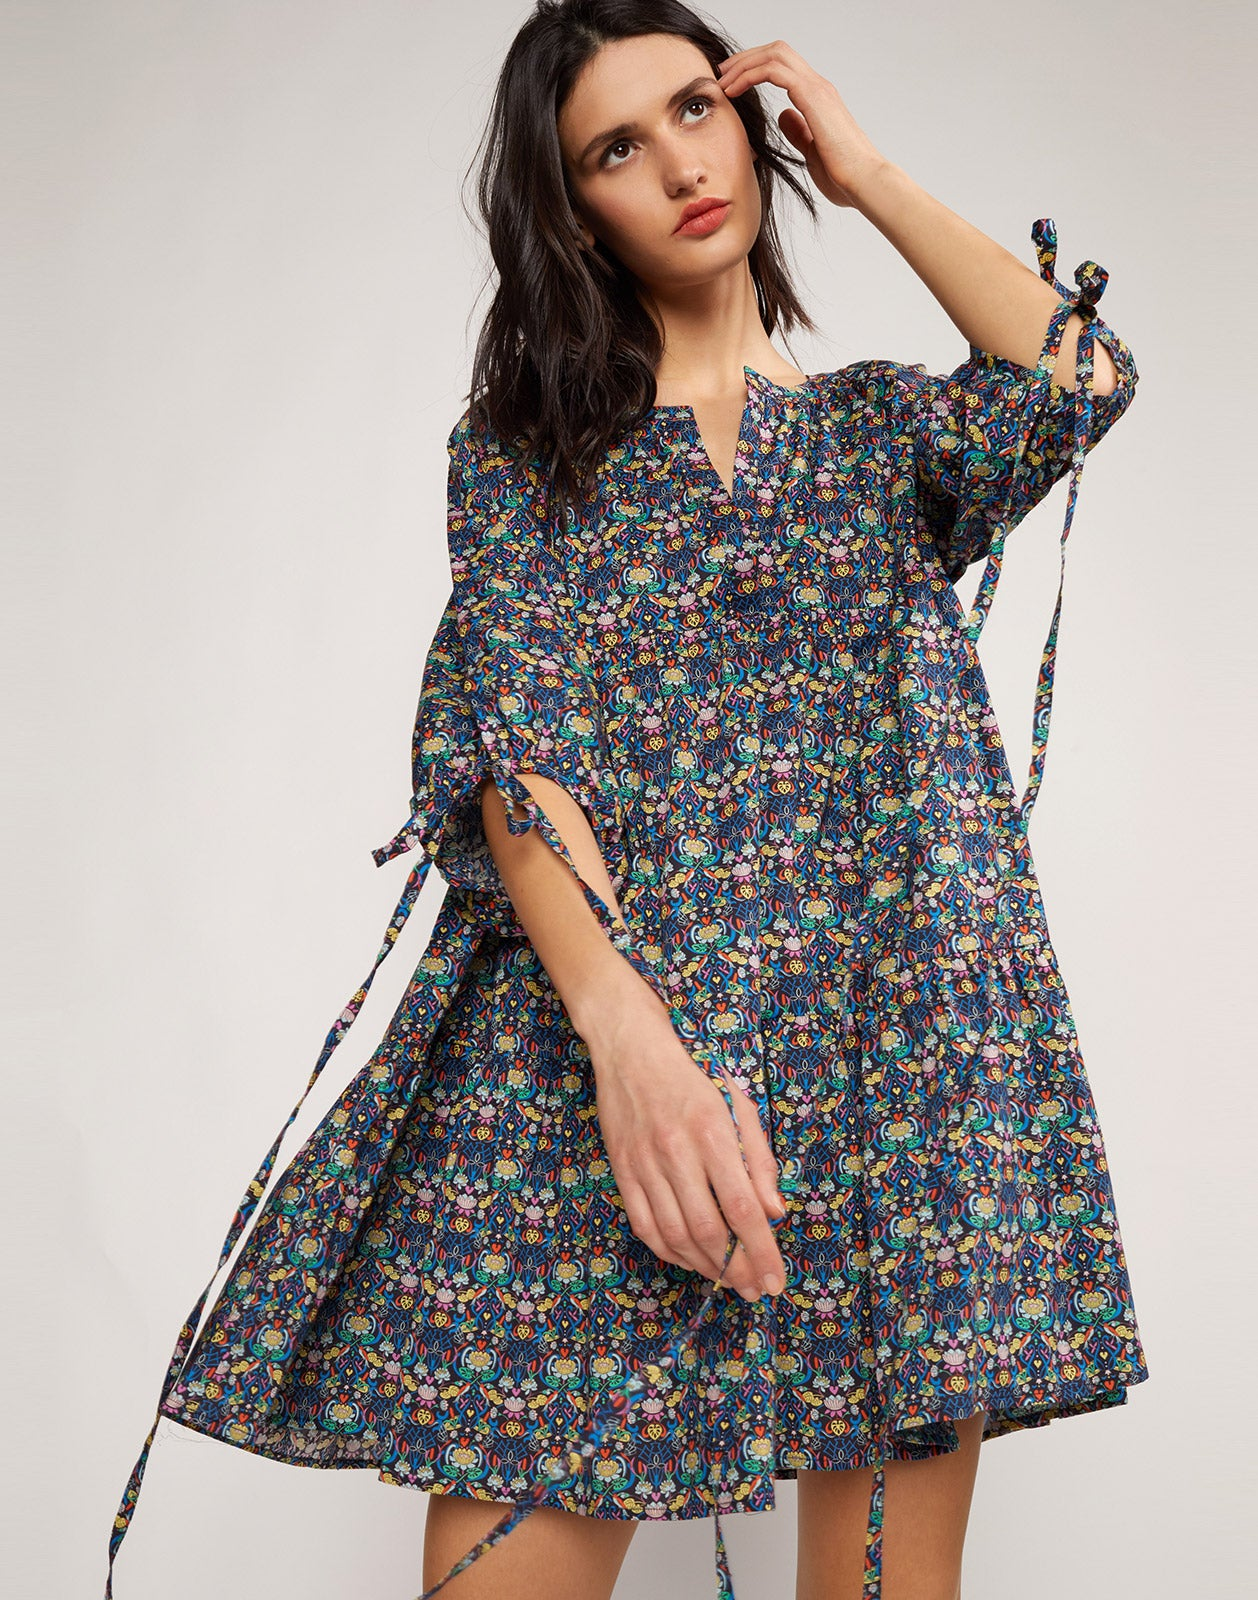 Penelope Dark Floral Dress